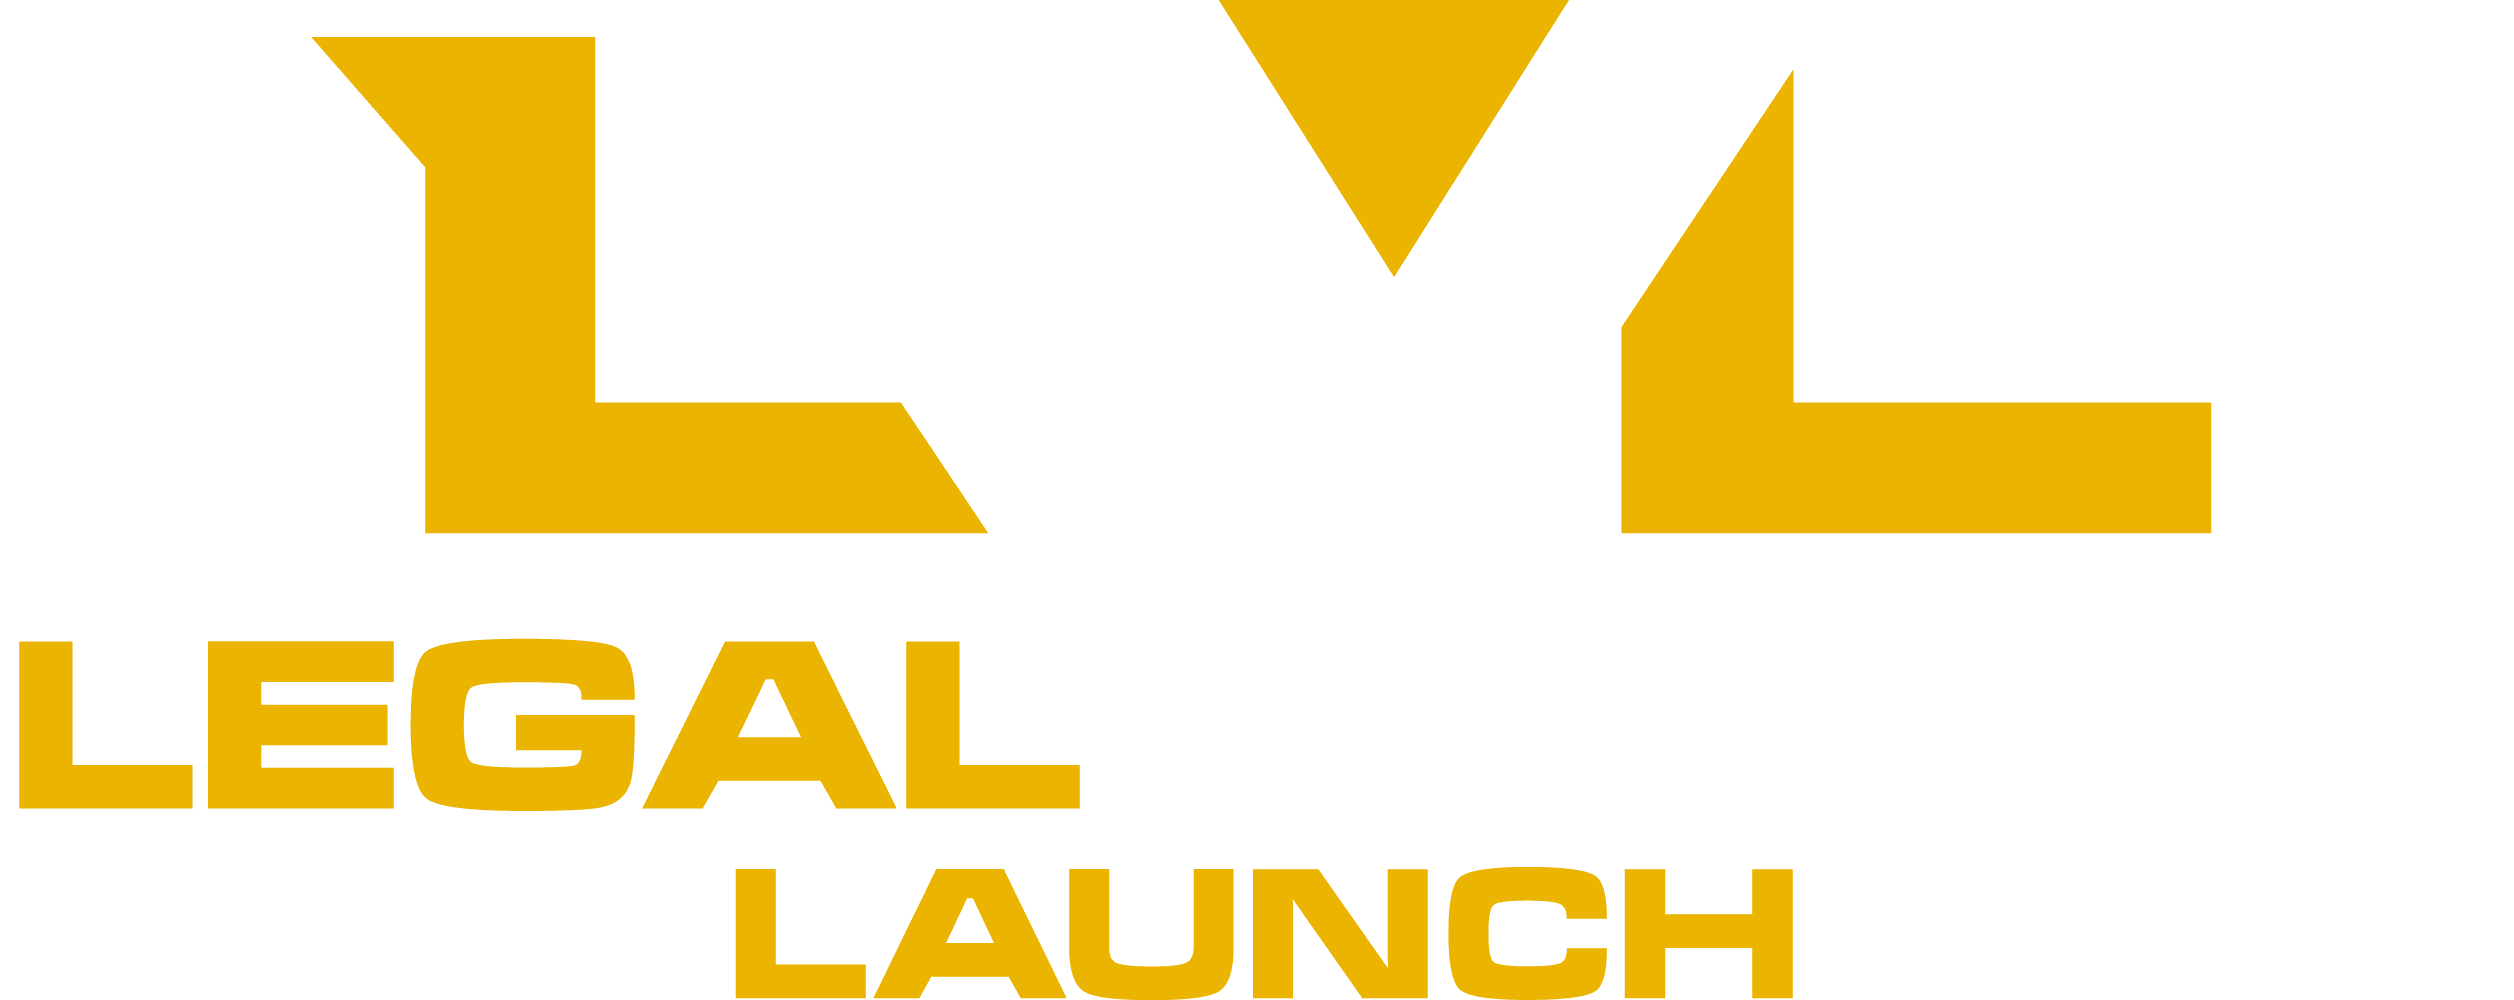 Legal Writing Launch Logo with Trademark Light for Dark backgrounds